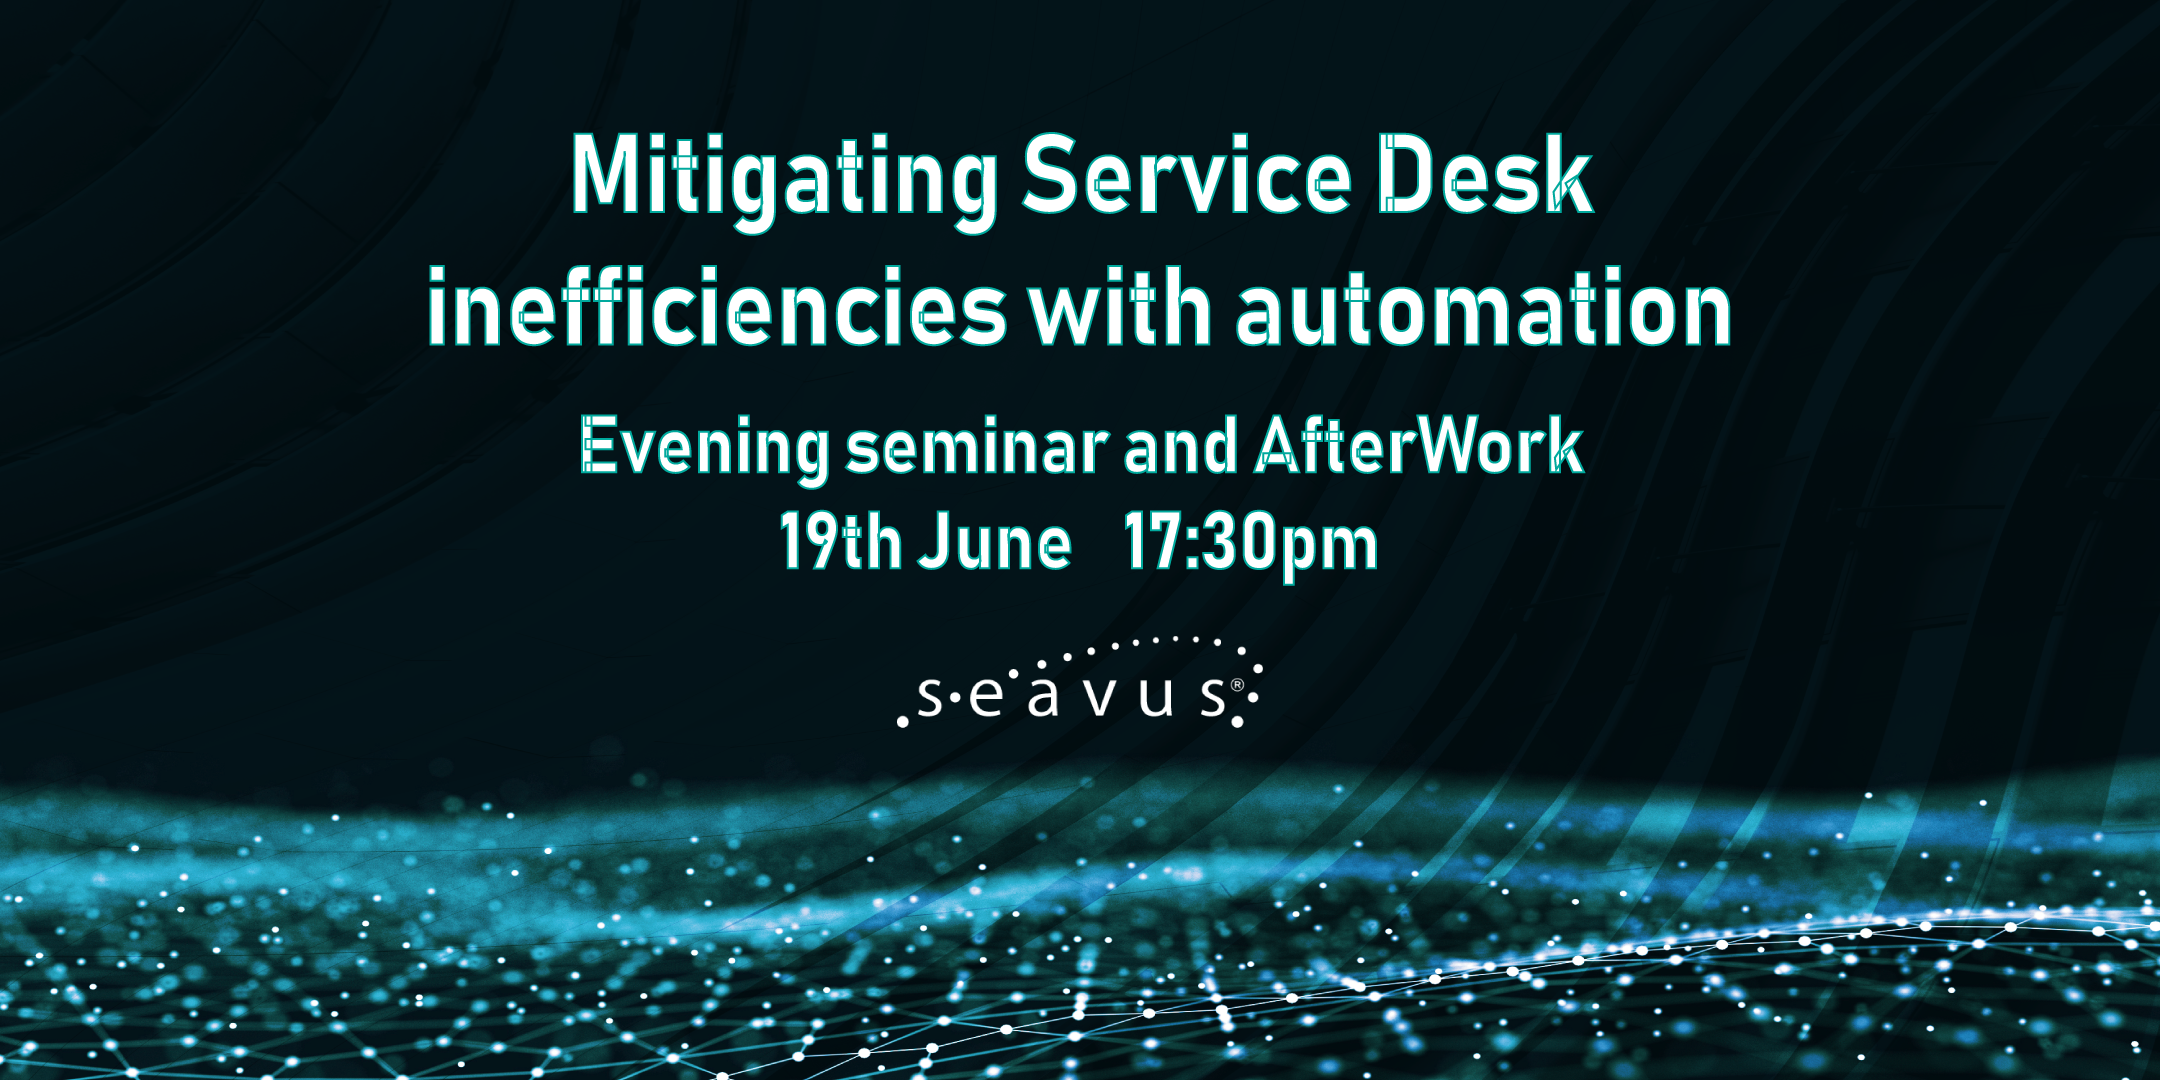 Seminarium: Mitigating Service Desk inefficiencies with automation